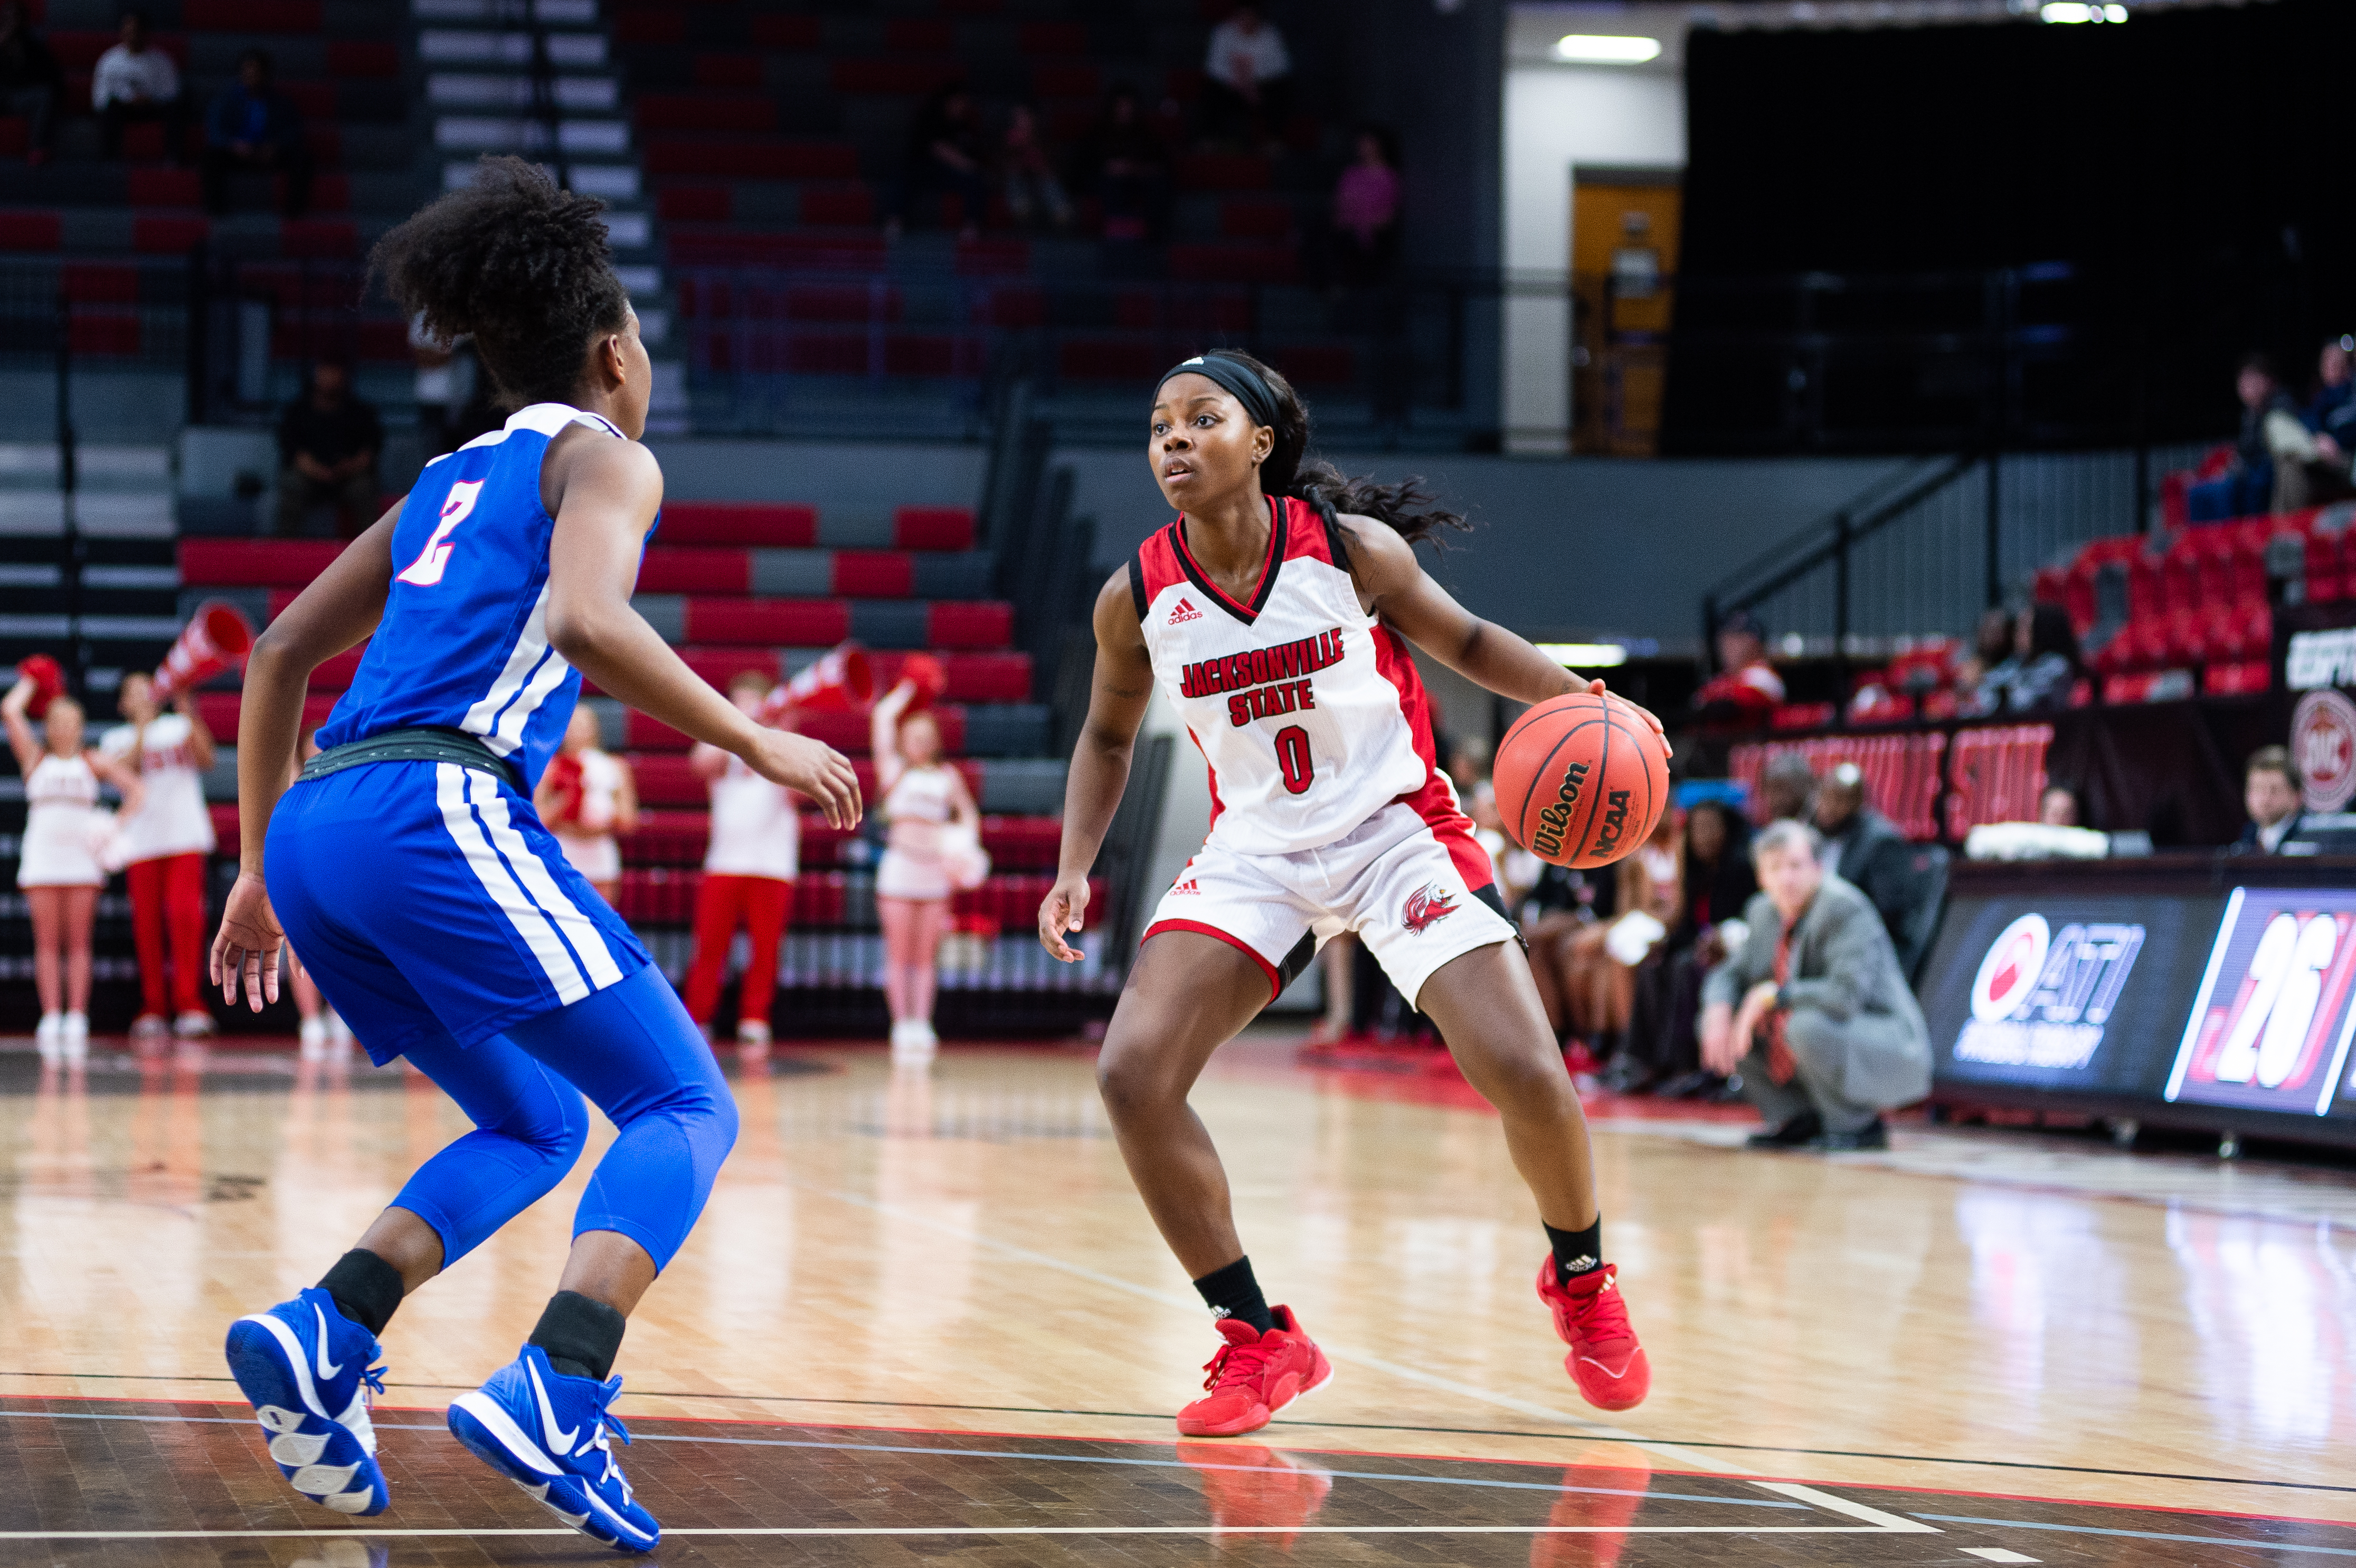 Taylor Hawks dribbles the ball as she looks for a shot as the JSU Women's Basketball defeats TSU 70-48 at Pete Mathews Coliseum. (Courtesy of JSU)